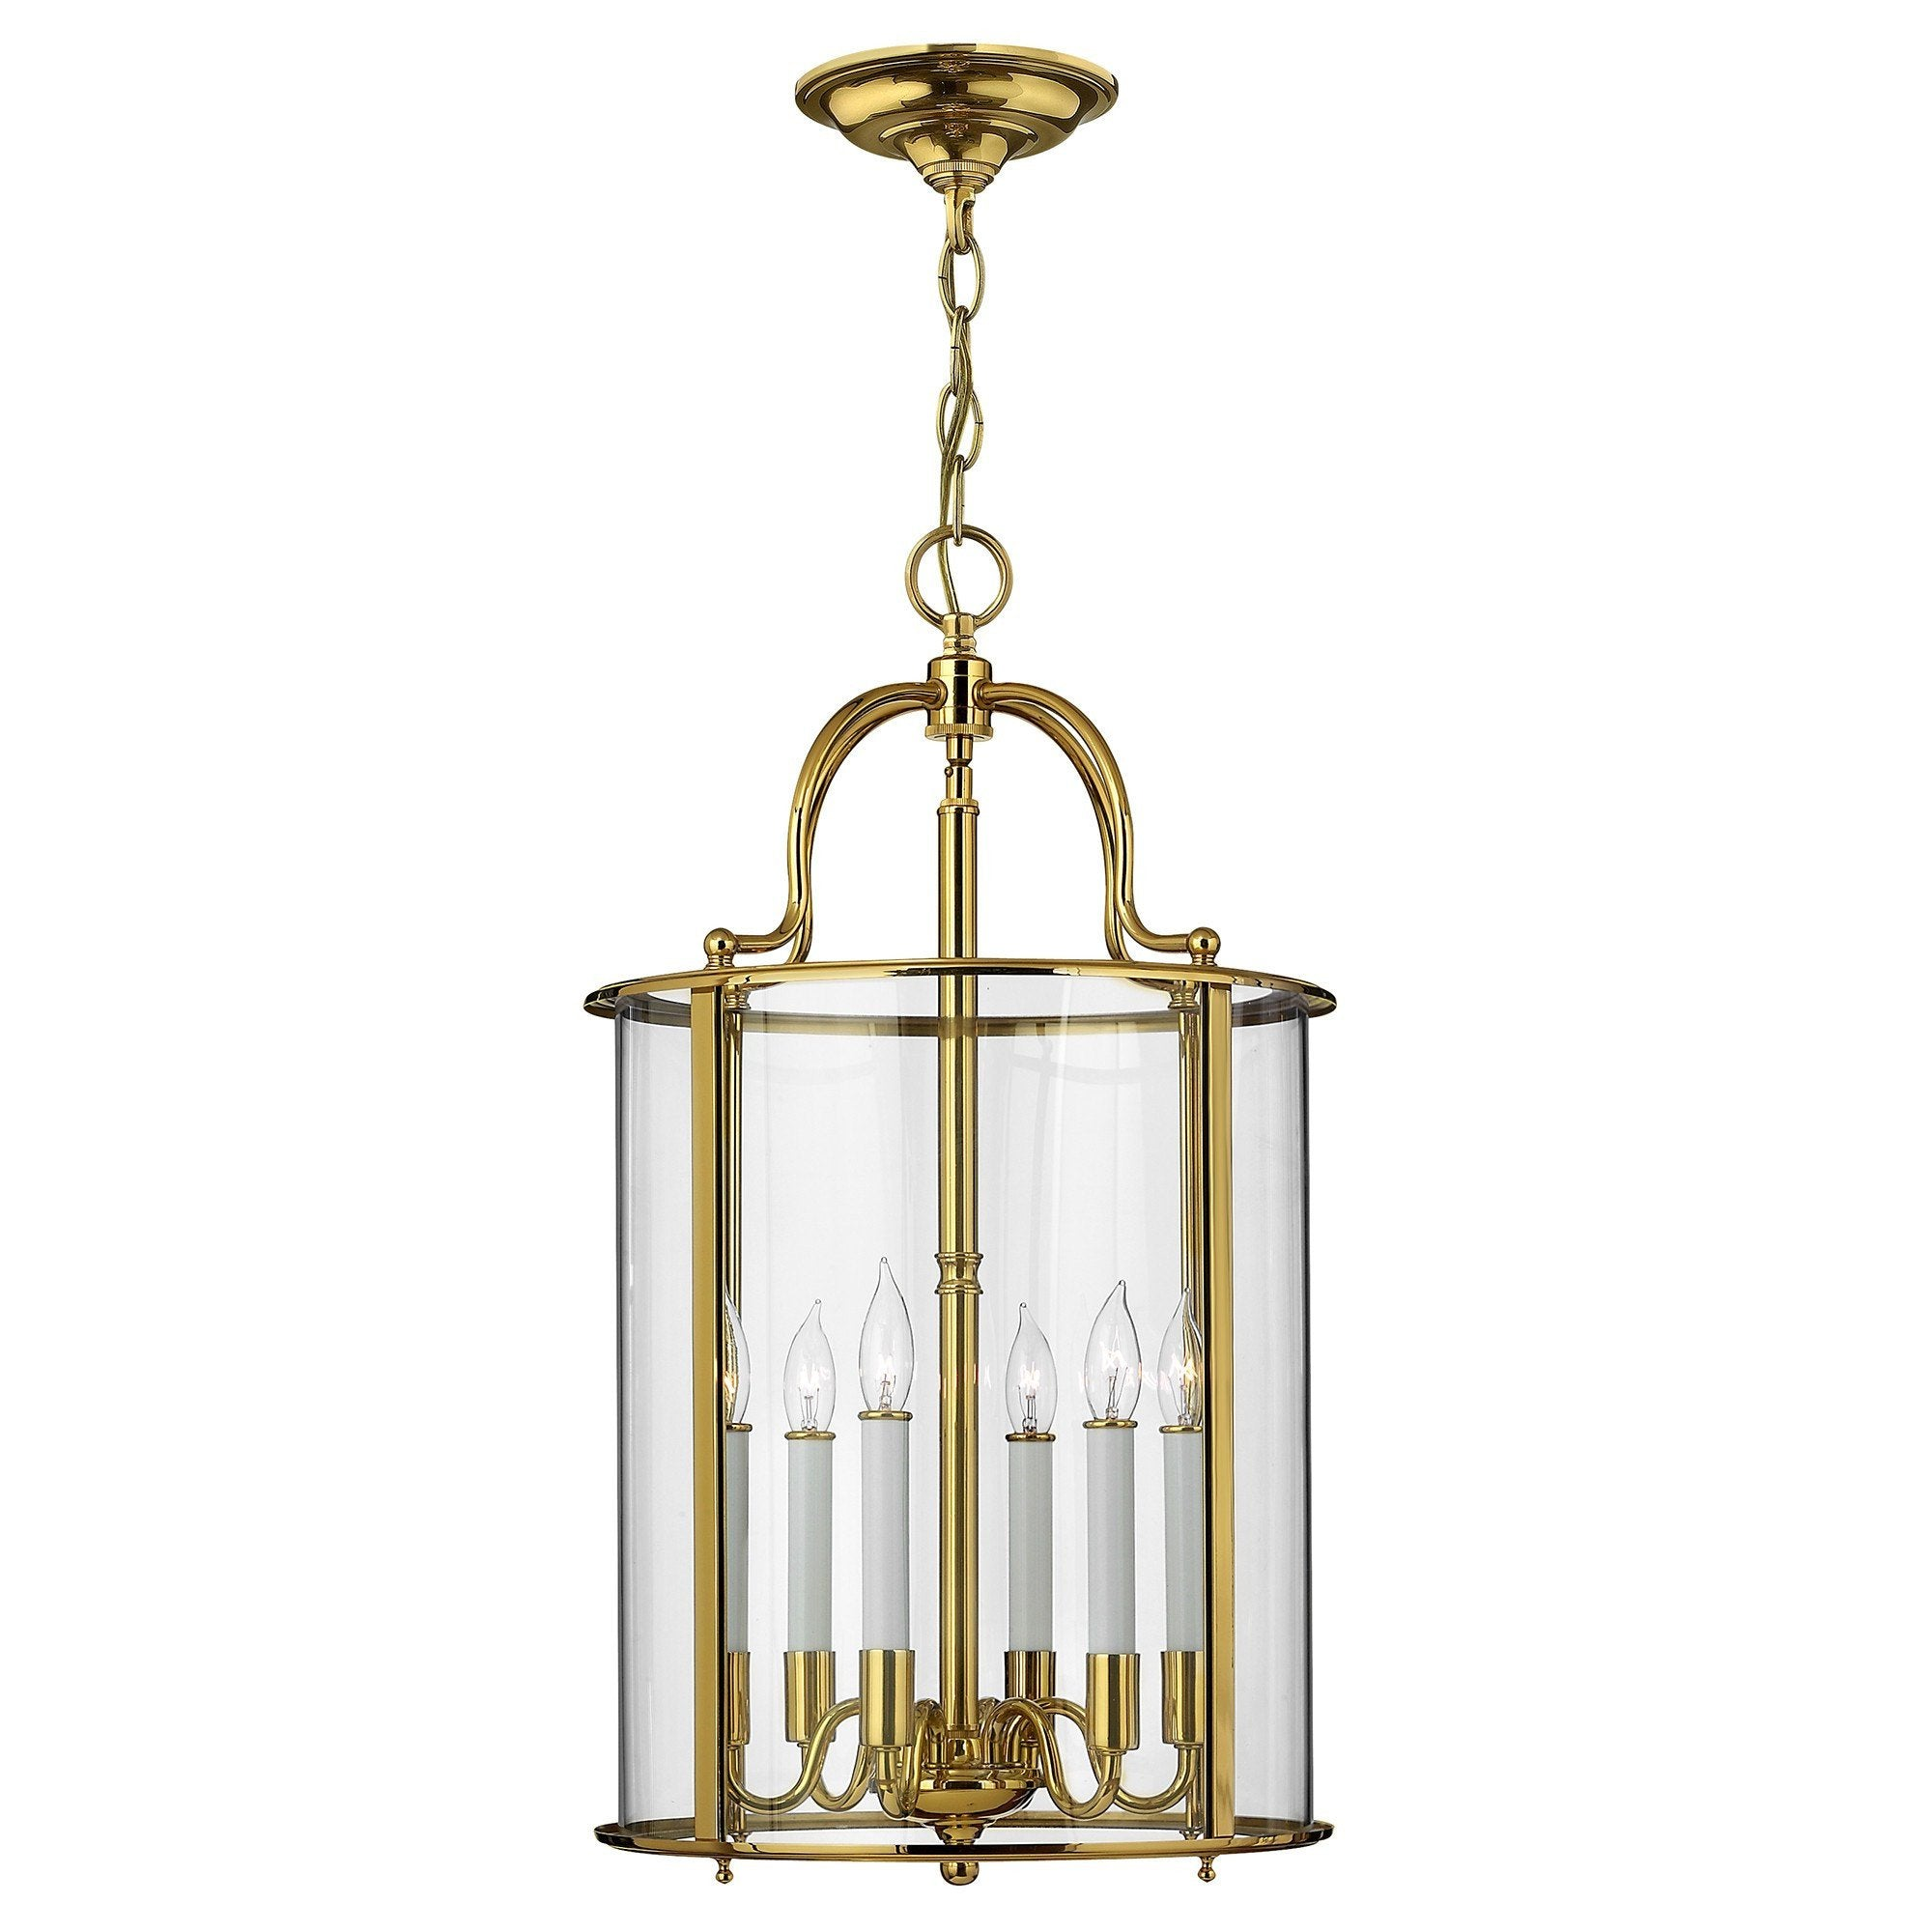 Hinkely Gentry Large Pendant Light - London Lighting - 1